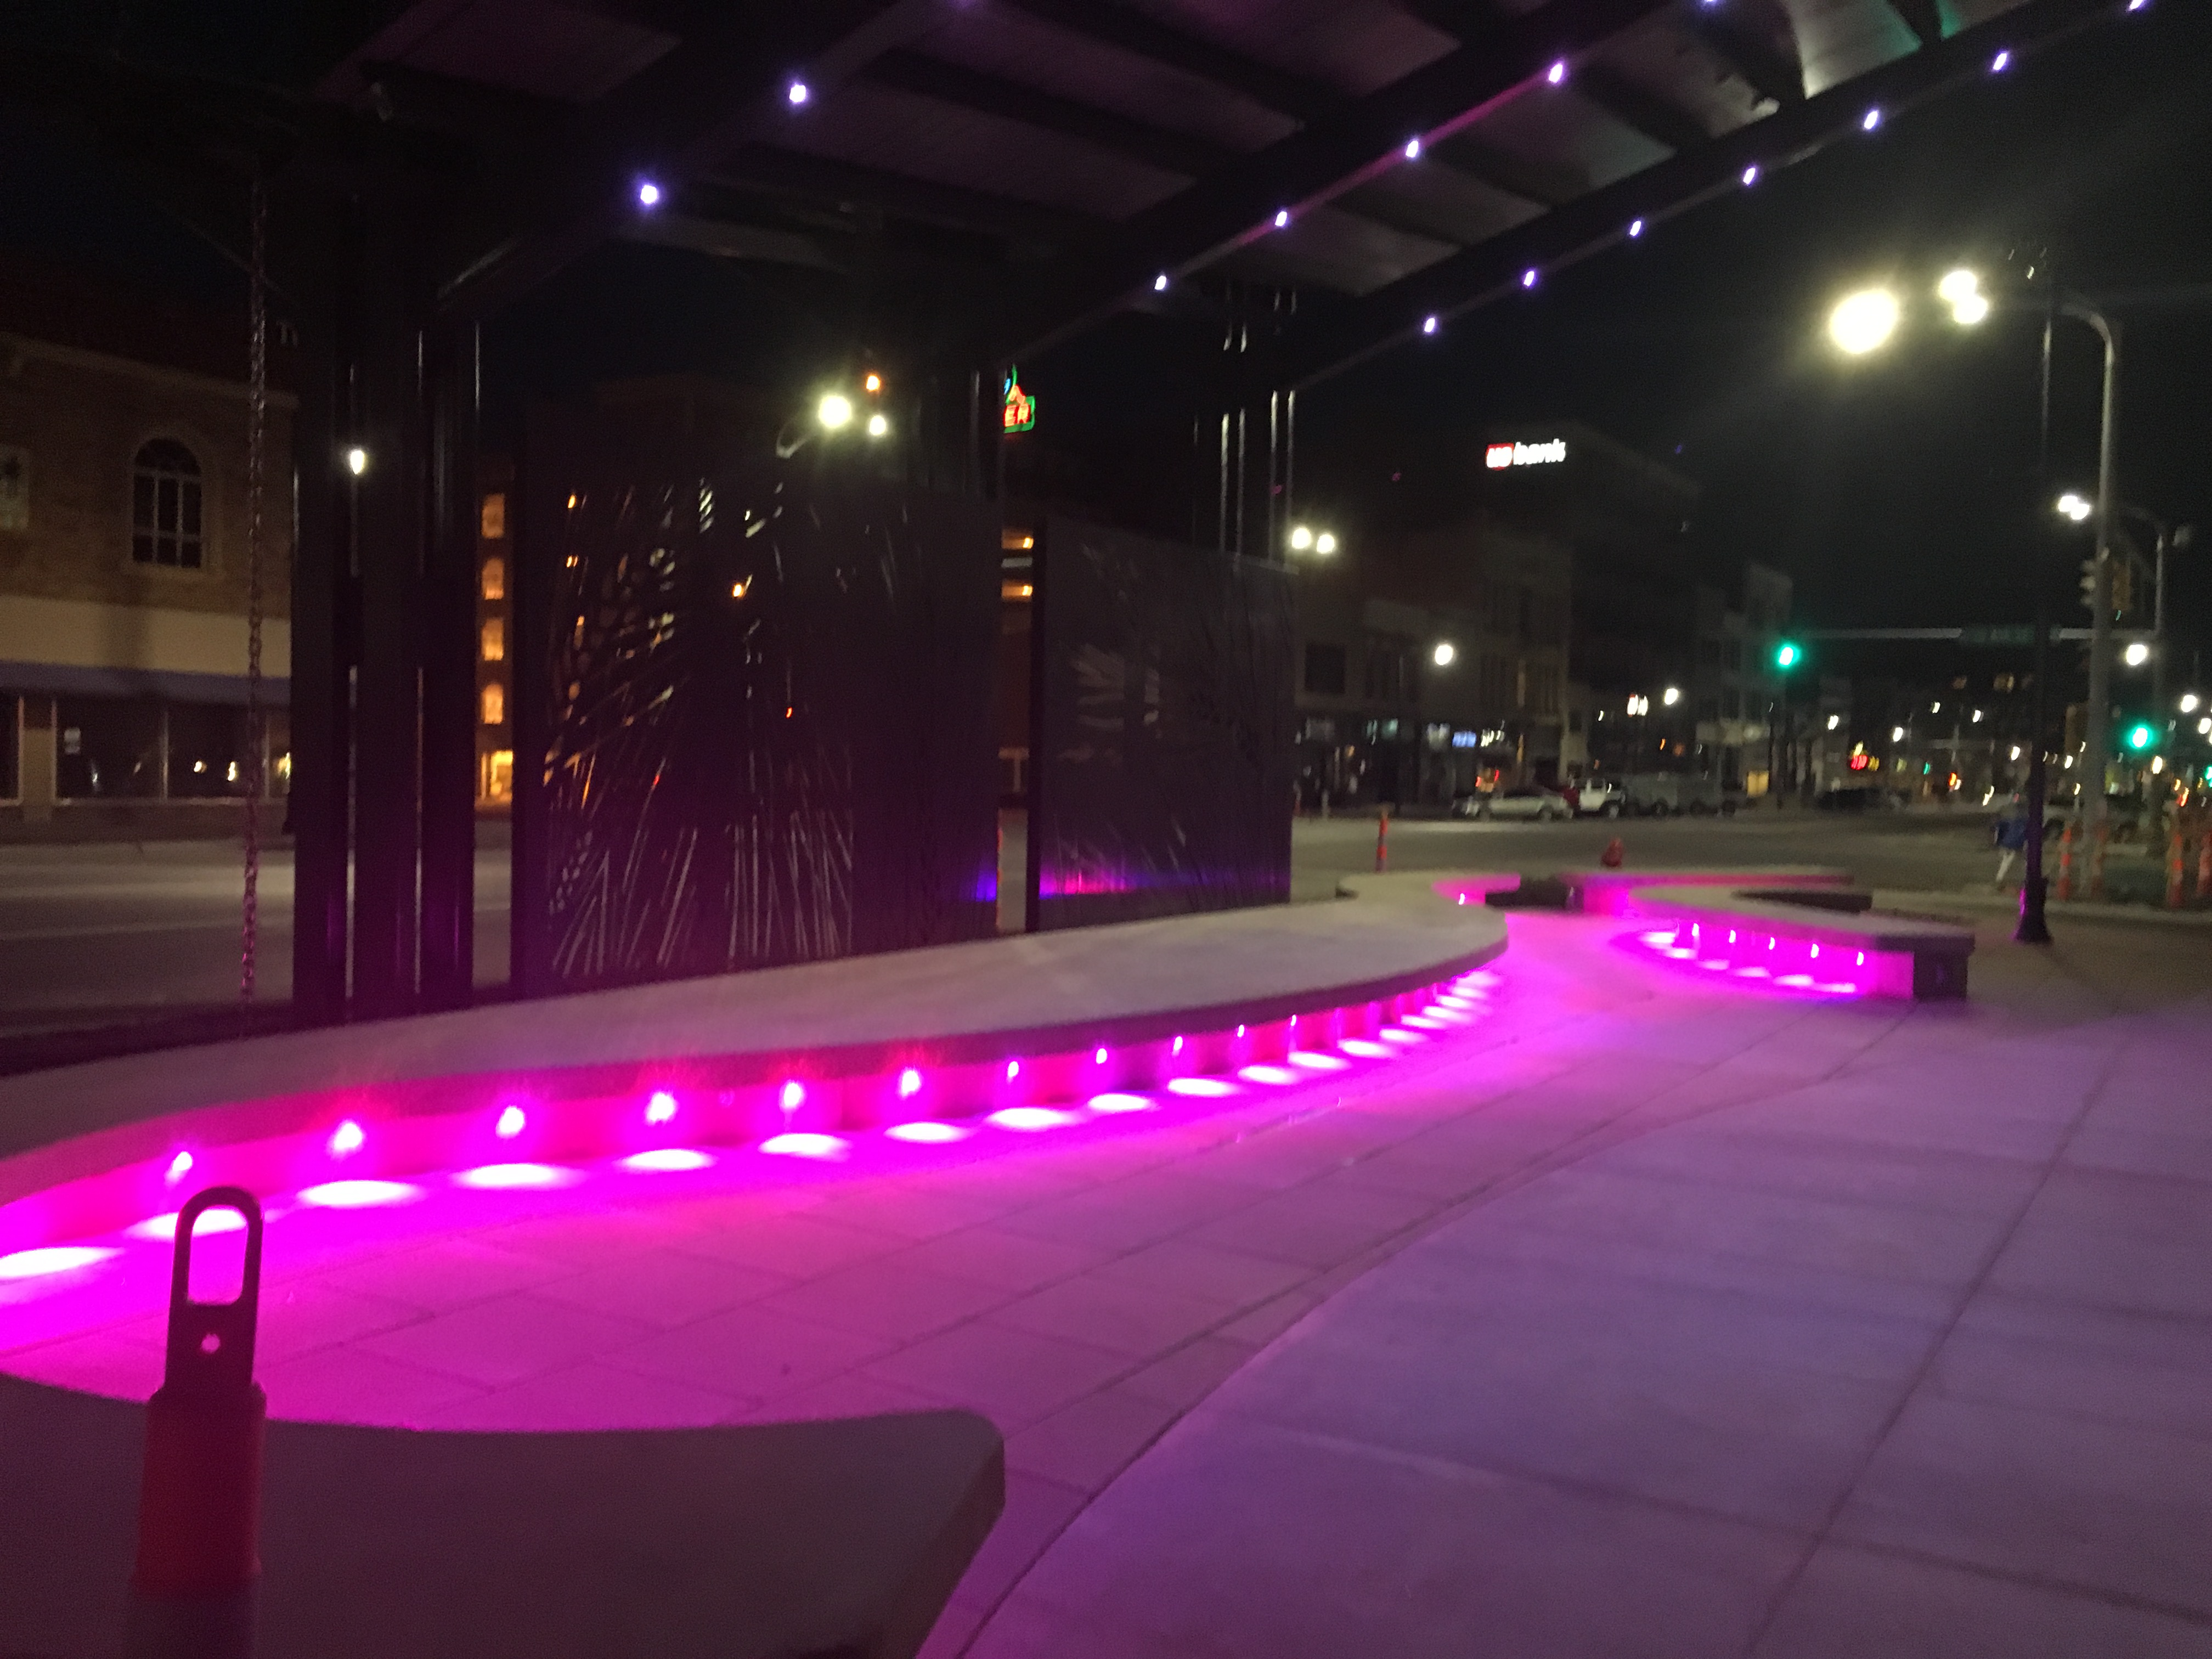 RGB Lighting stands for Red Green and Blue lighting. When you combine these colors you can create any color including white light. & RGB Lighting u0026 Smart Controls u2013 Sunlite Science and Technology Inc. azcodes.com